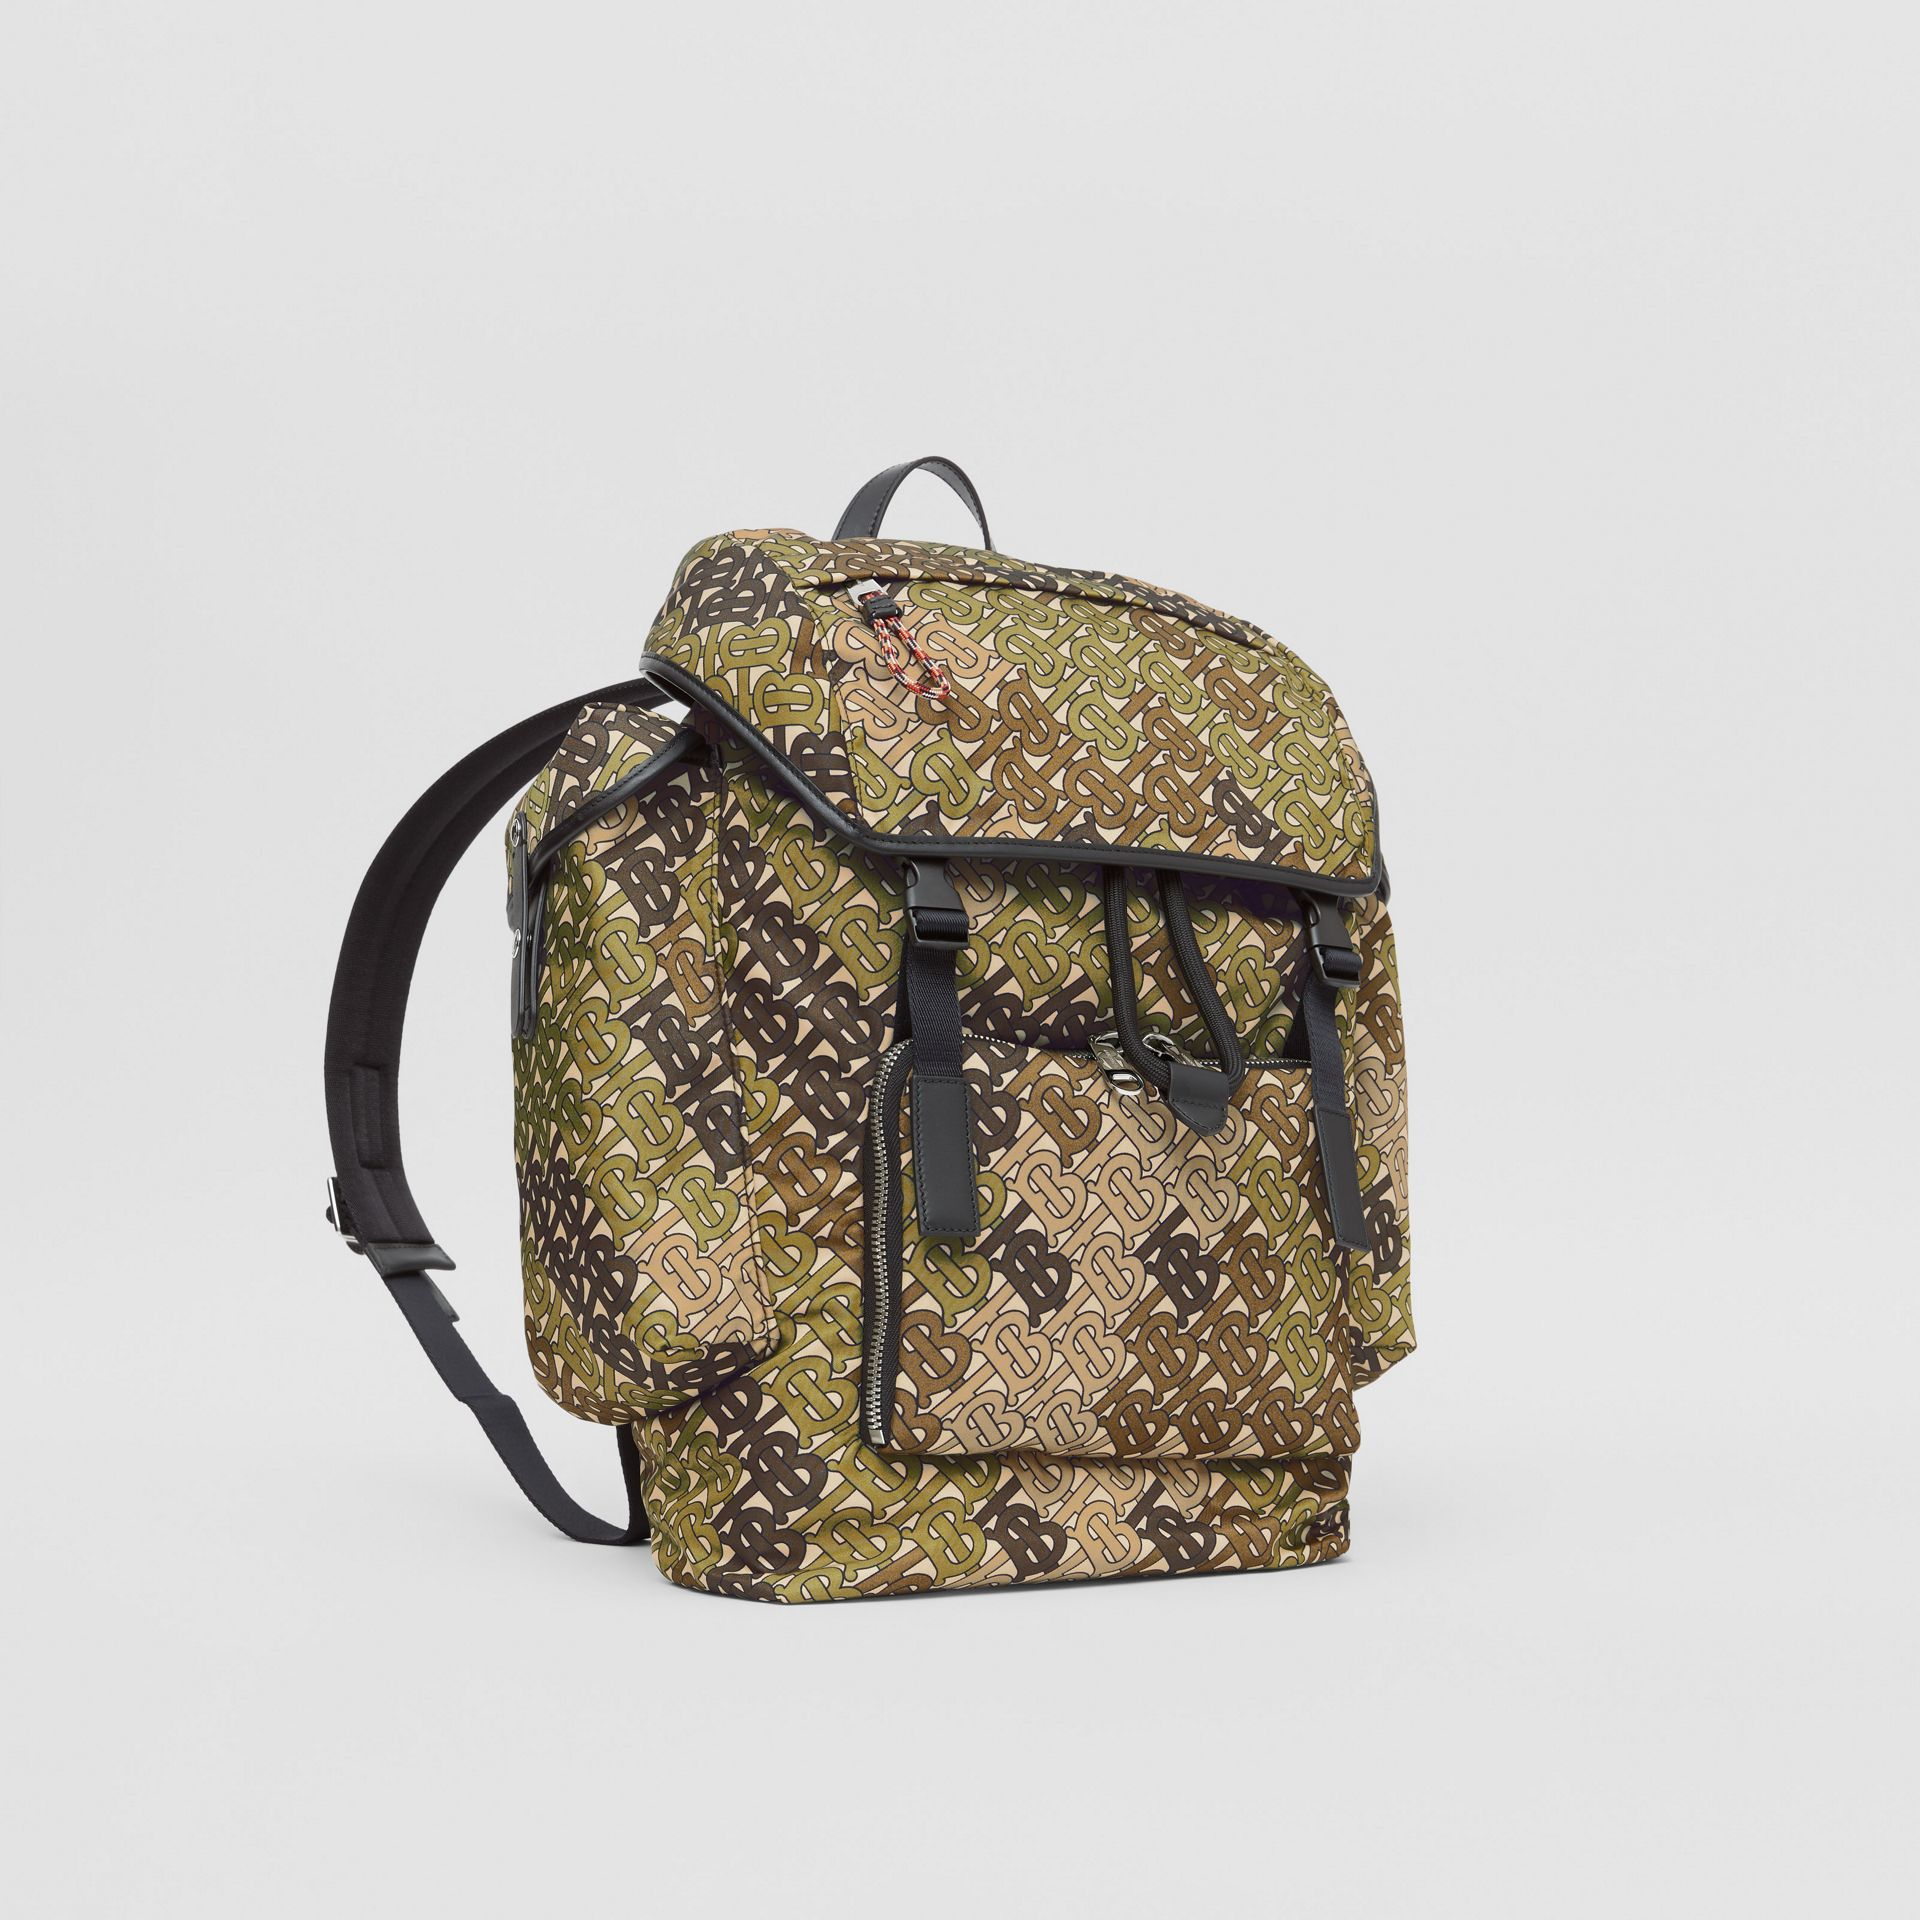 Medium Monogram Print Nylon Backpack in Khaki Green - Men | Burberry Singapore - gallery image 6